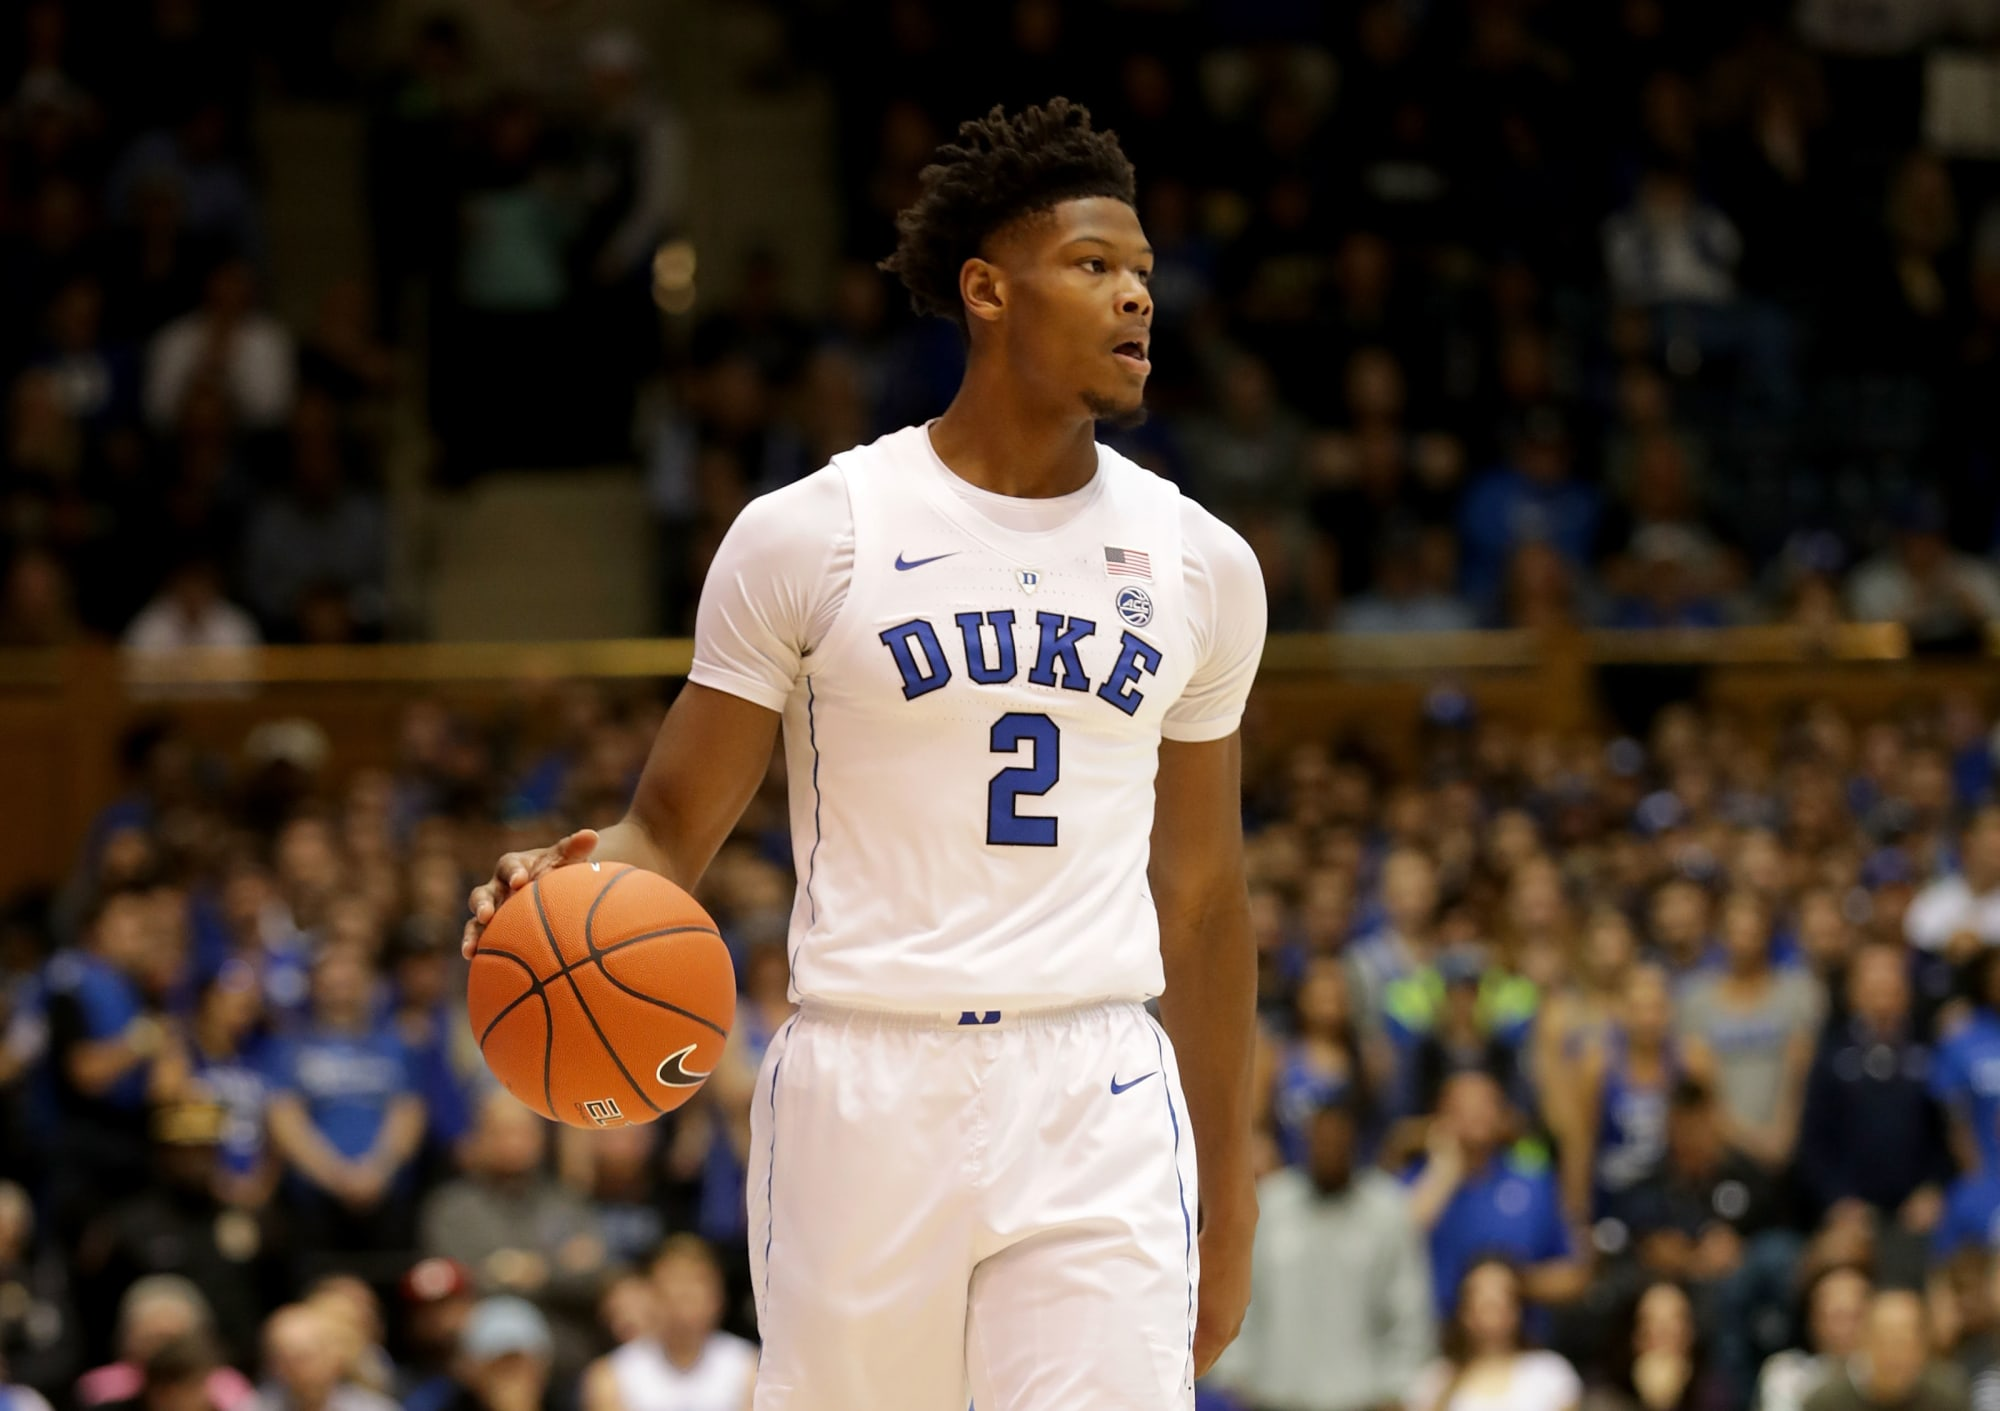 Duke Basketball: Cam Reddish's struggles might come to an end soon